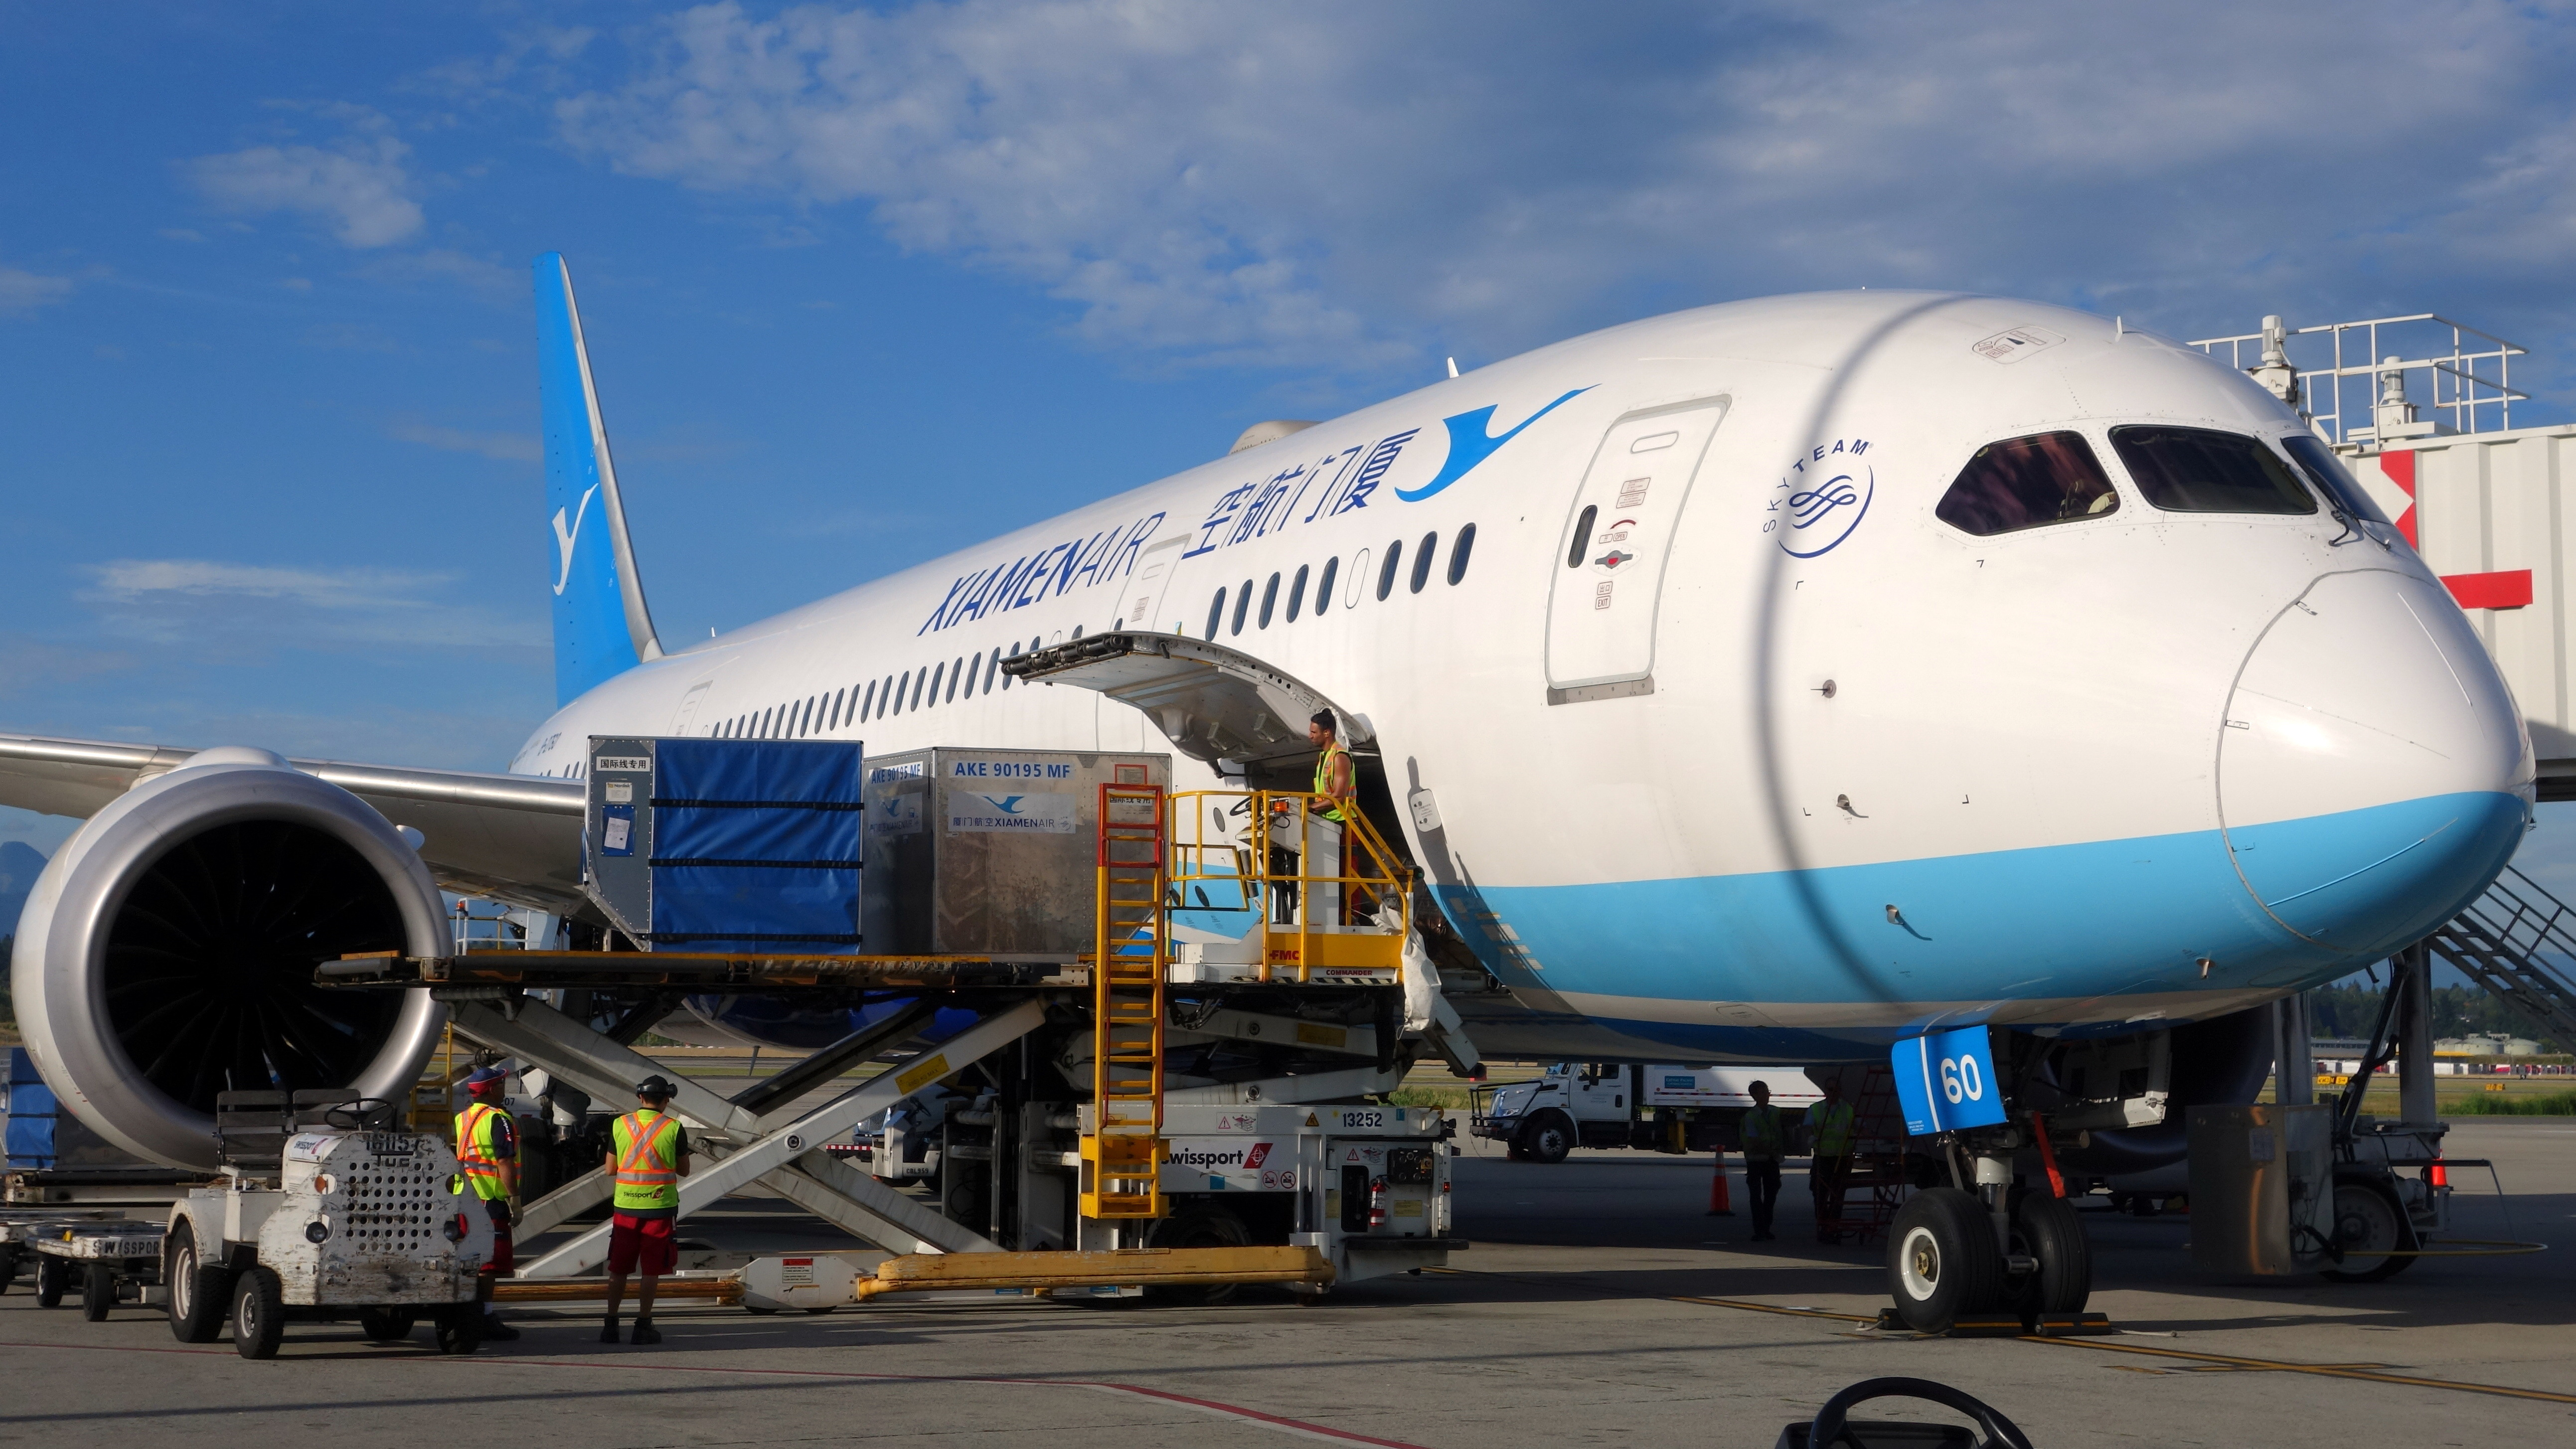 Airplane take-offs: 10 procedures that must be done first